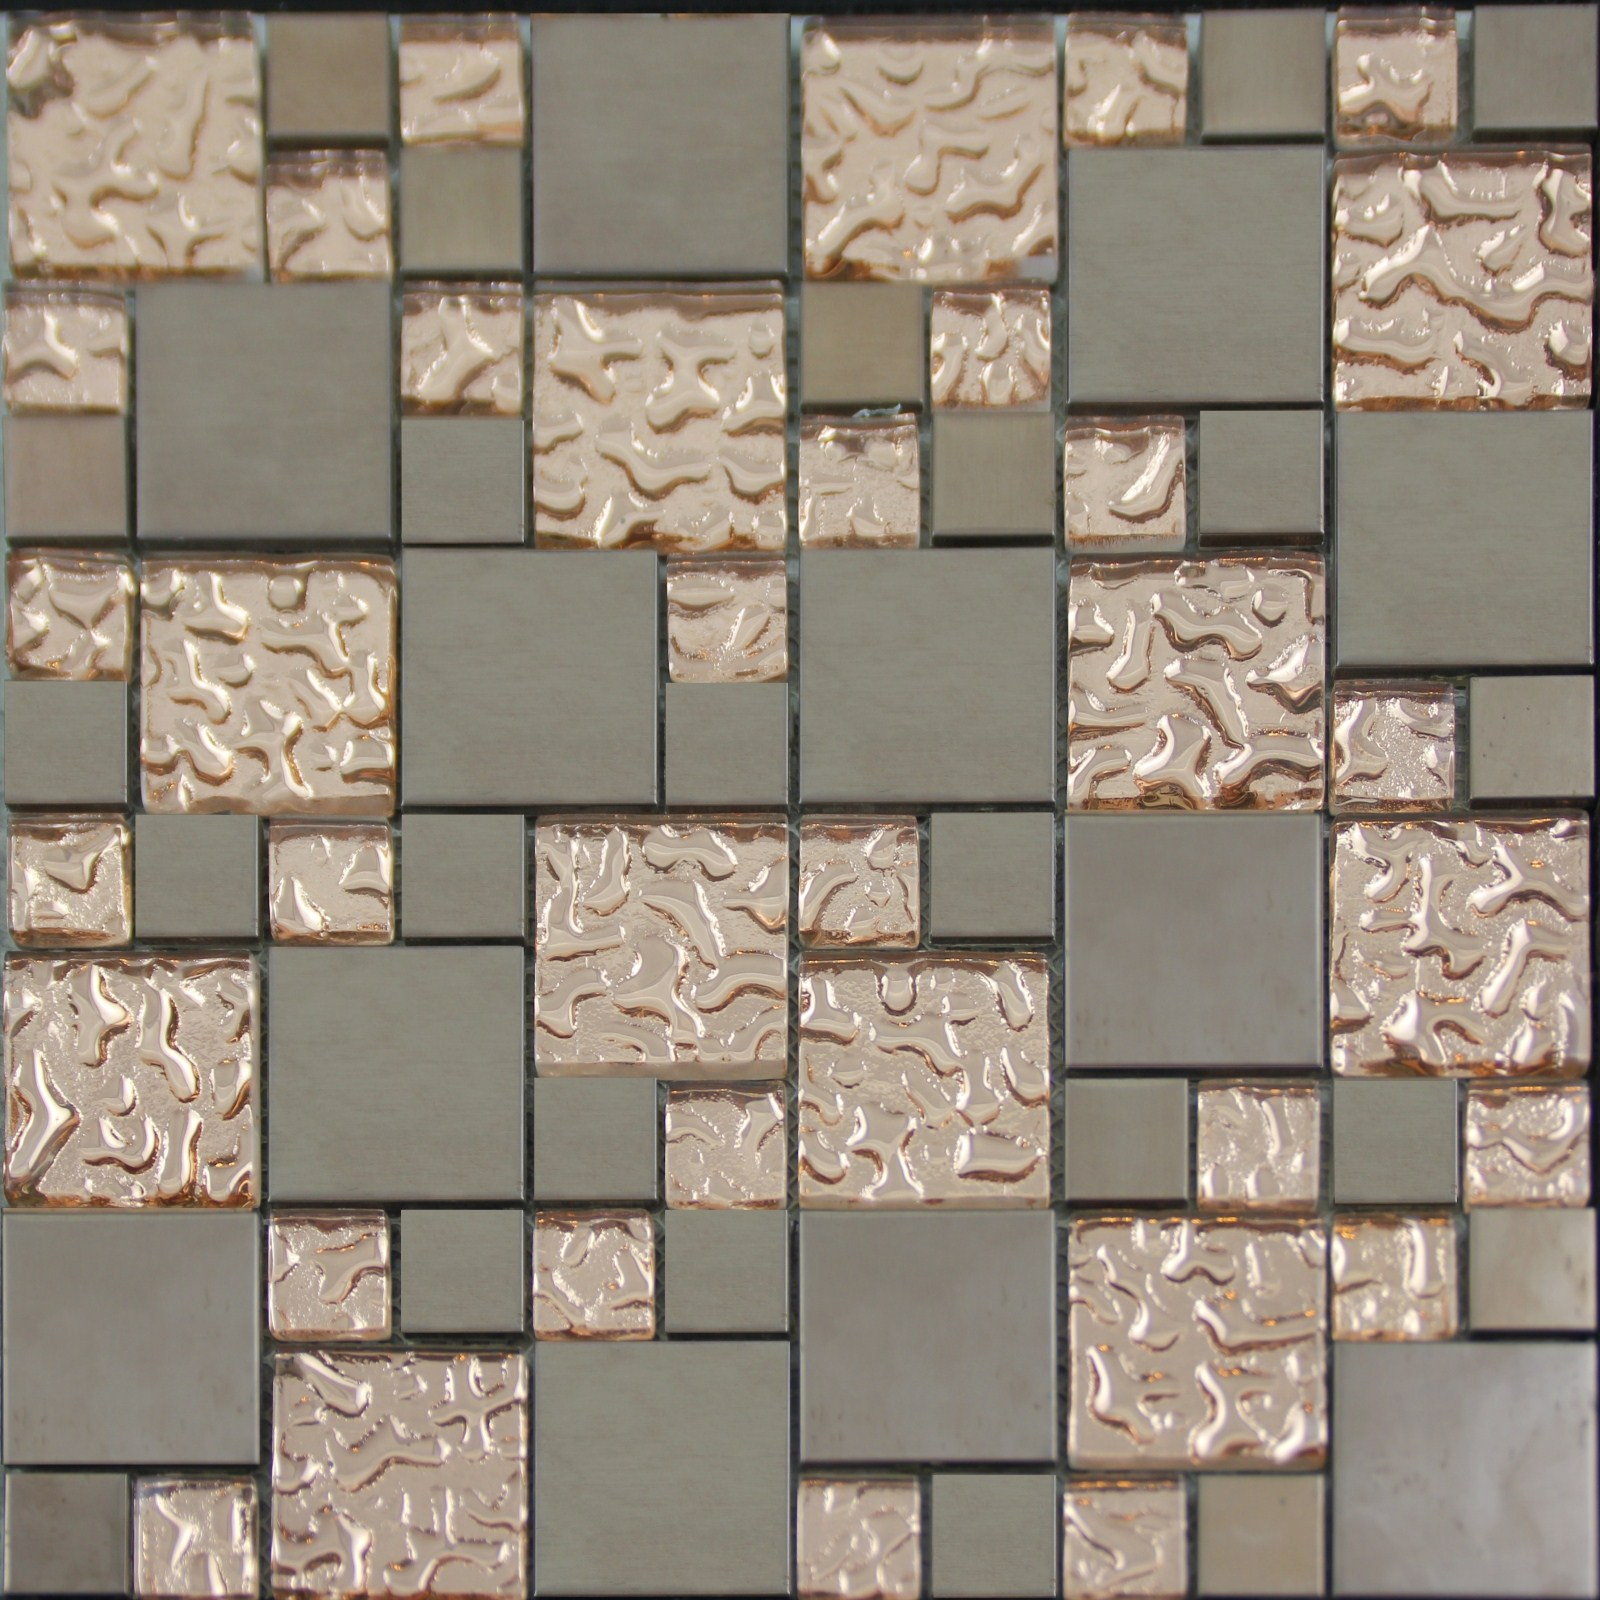 Copper Glass and Porcelain Square Mosaic Tile Designs Plated Ceramic Wall Tiles Wall Kitchen